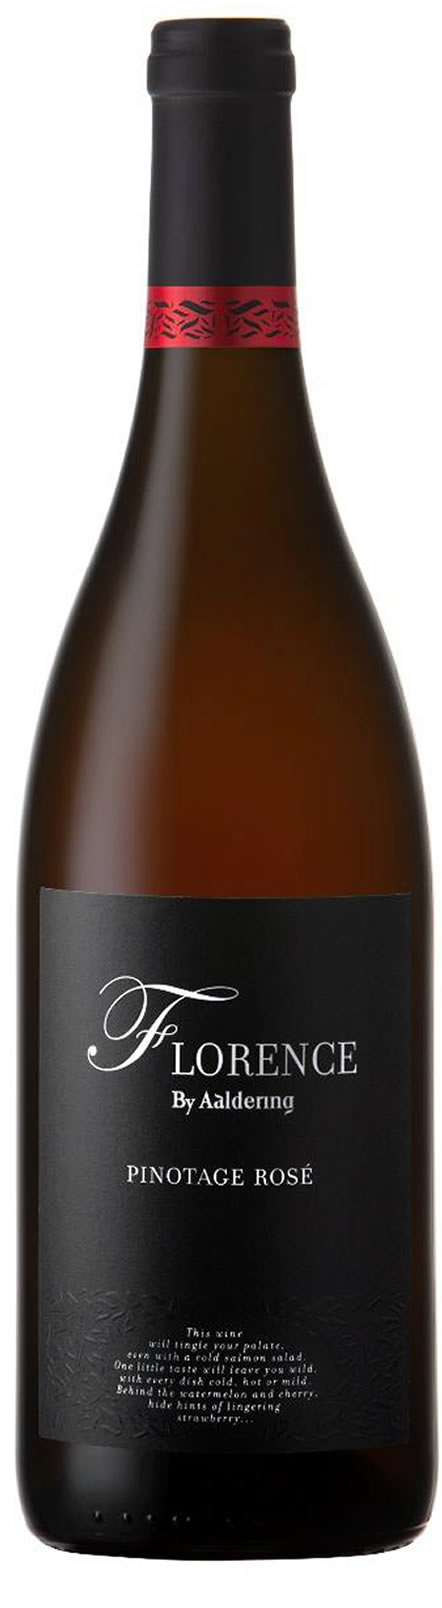 Aaldering Florence Pinotage Rosè